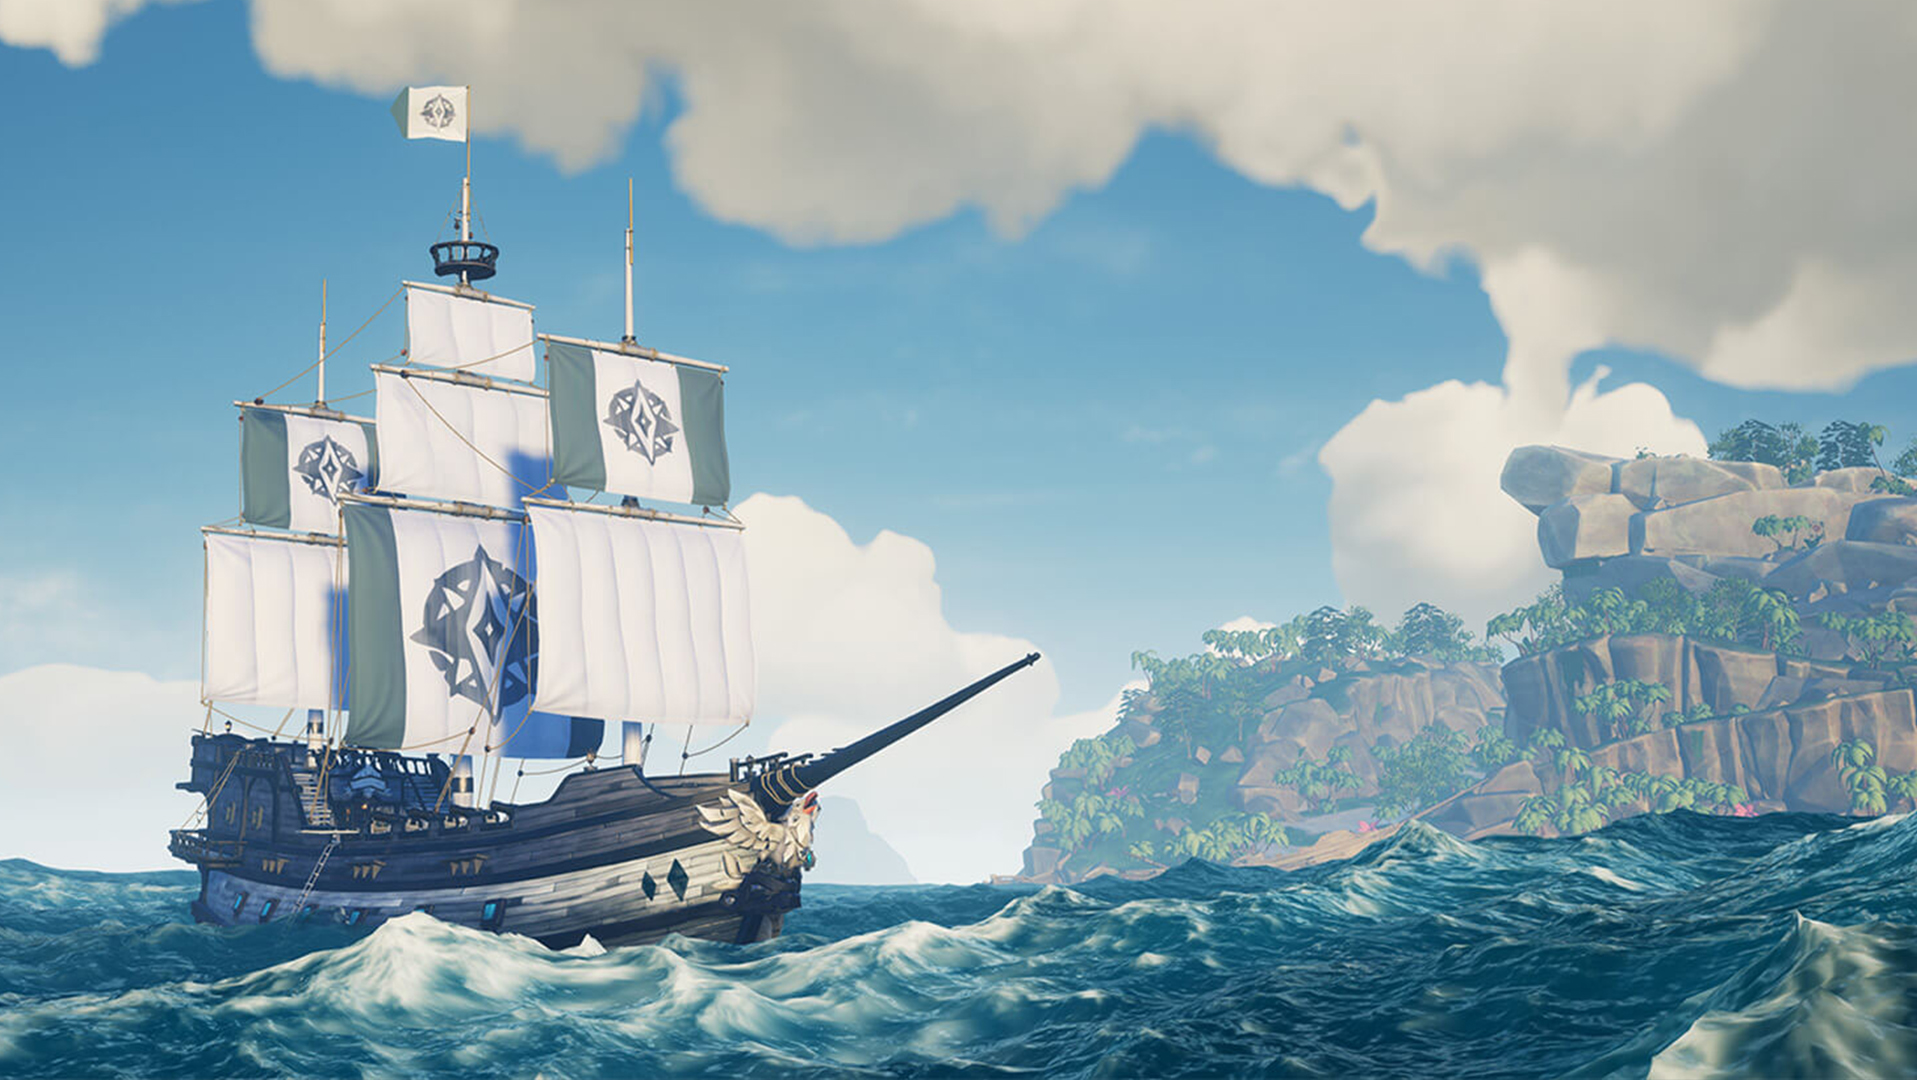 Sea of Thieves: Season 2 starts soon - that's what you can expect